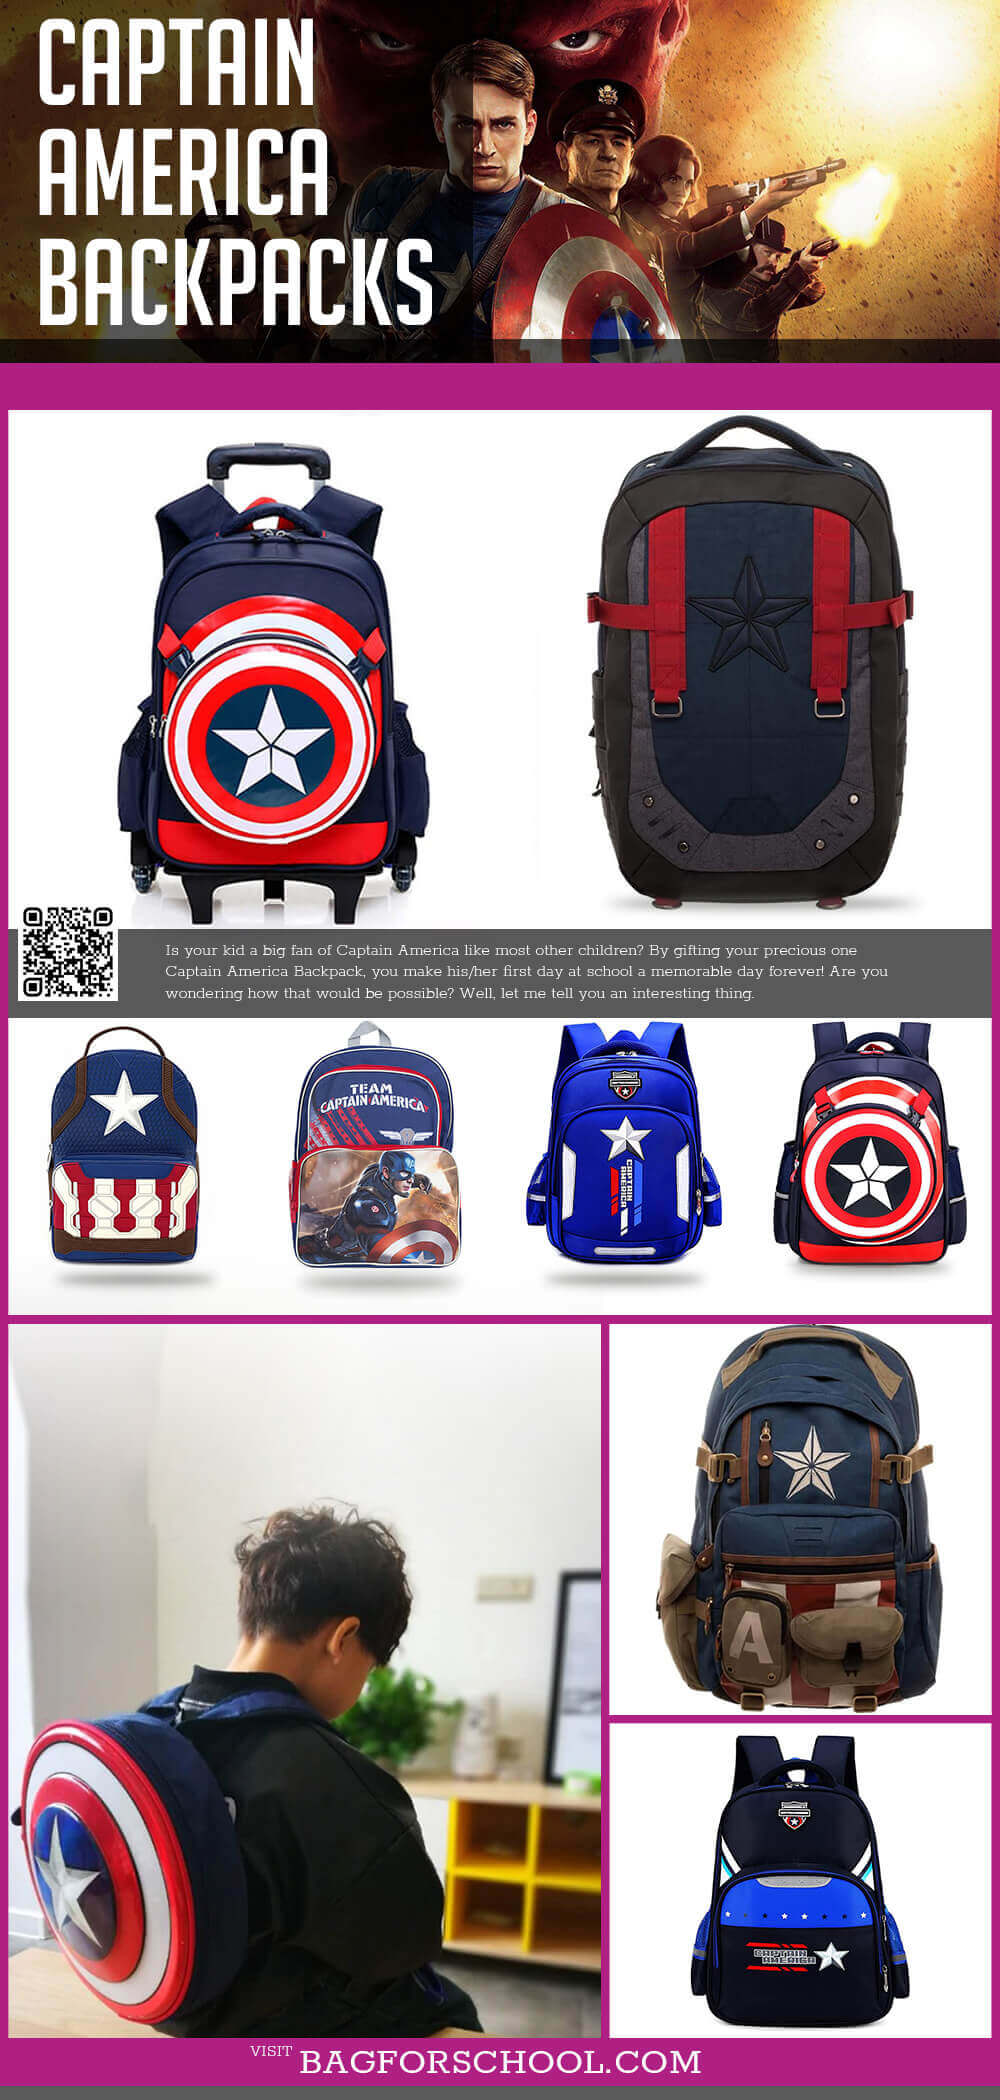 Captain America Backpacks